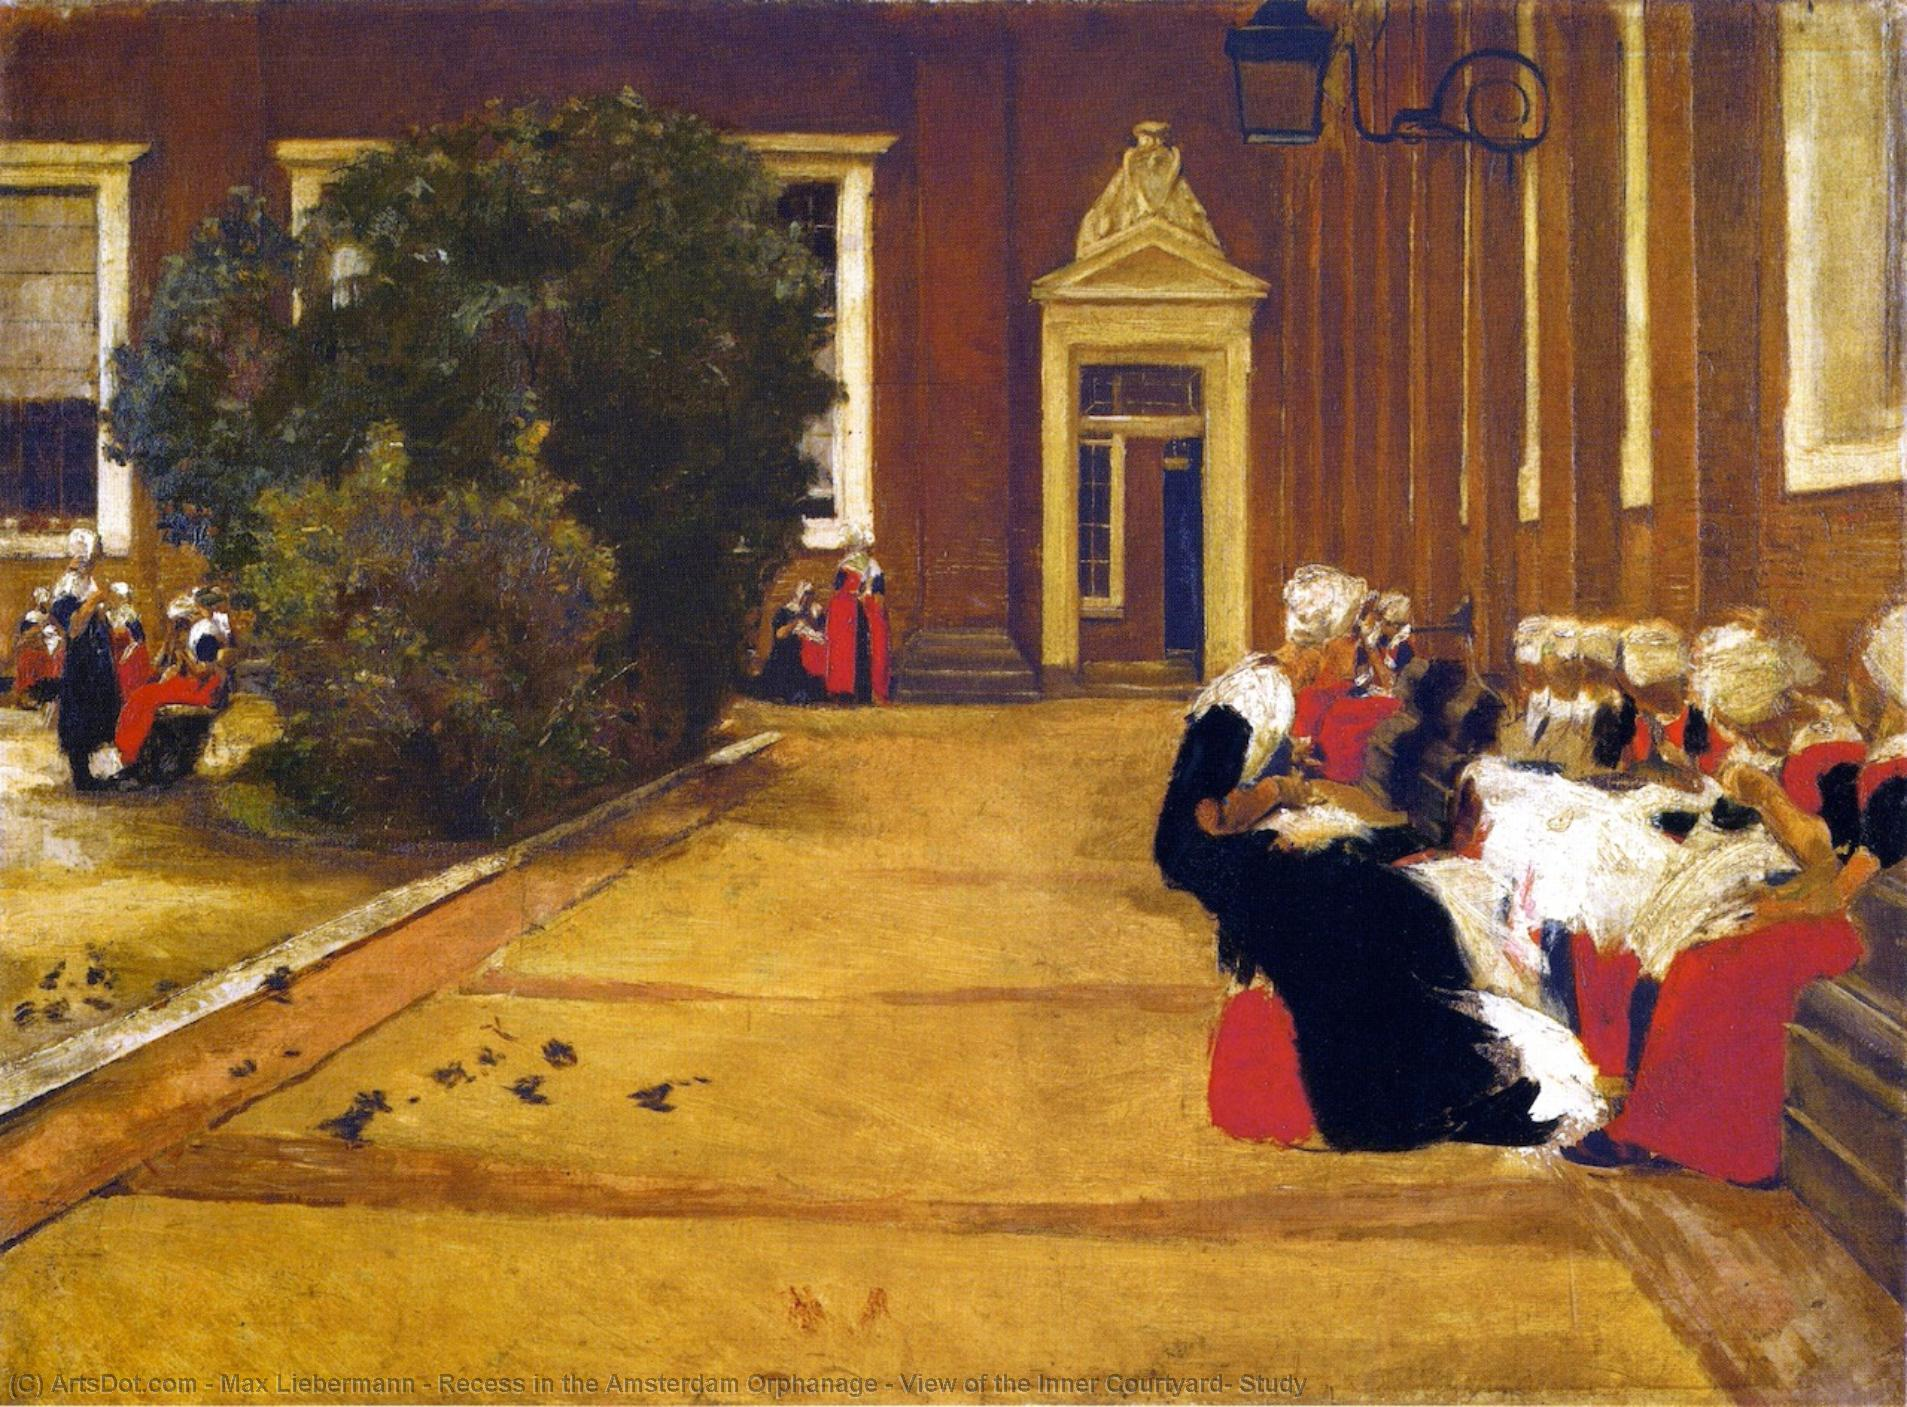 Wikioo.org - The Encyclopedia of Fine Arts - Painting, Artwork by Max Liebermann - Recess in the Amsterdam Orphanage - View of the Inner Courtyard, Study